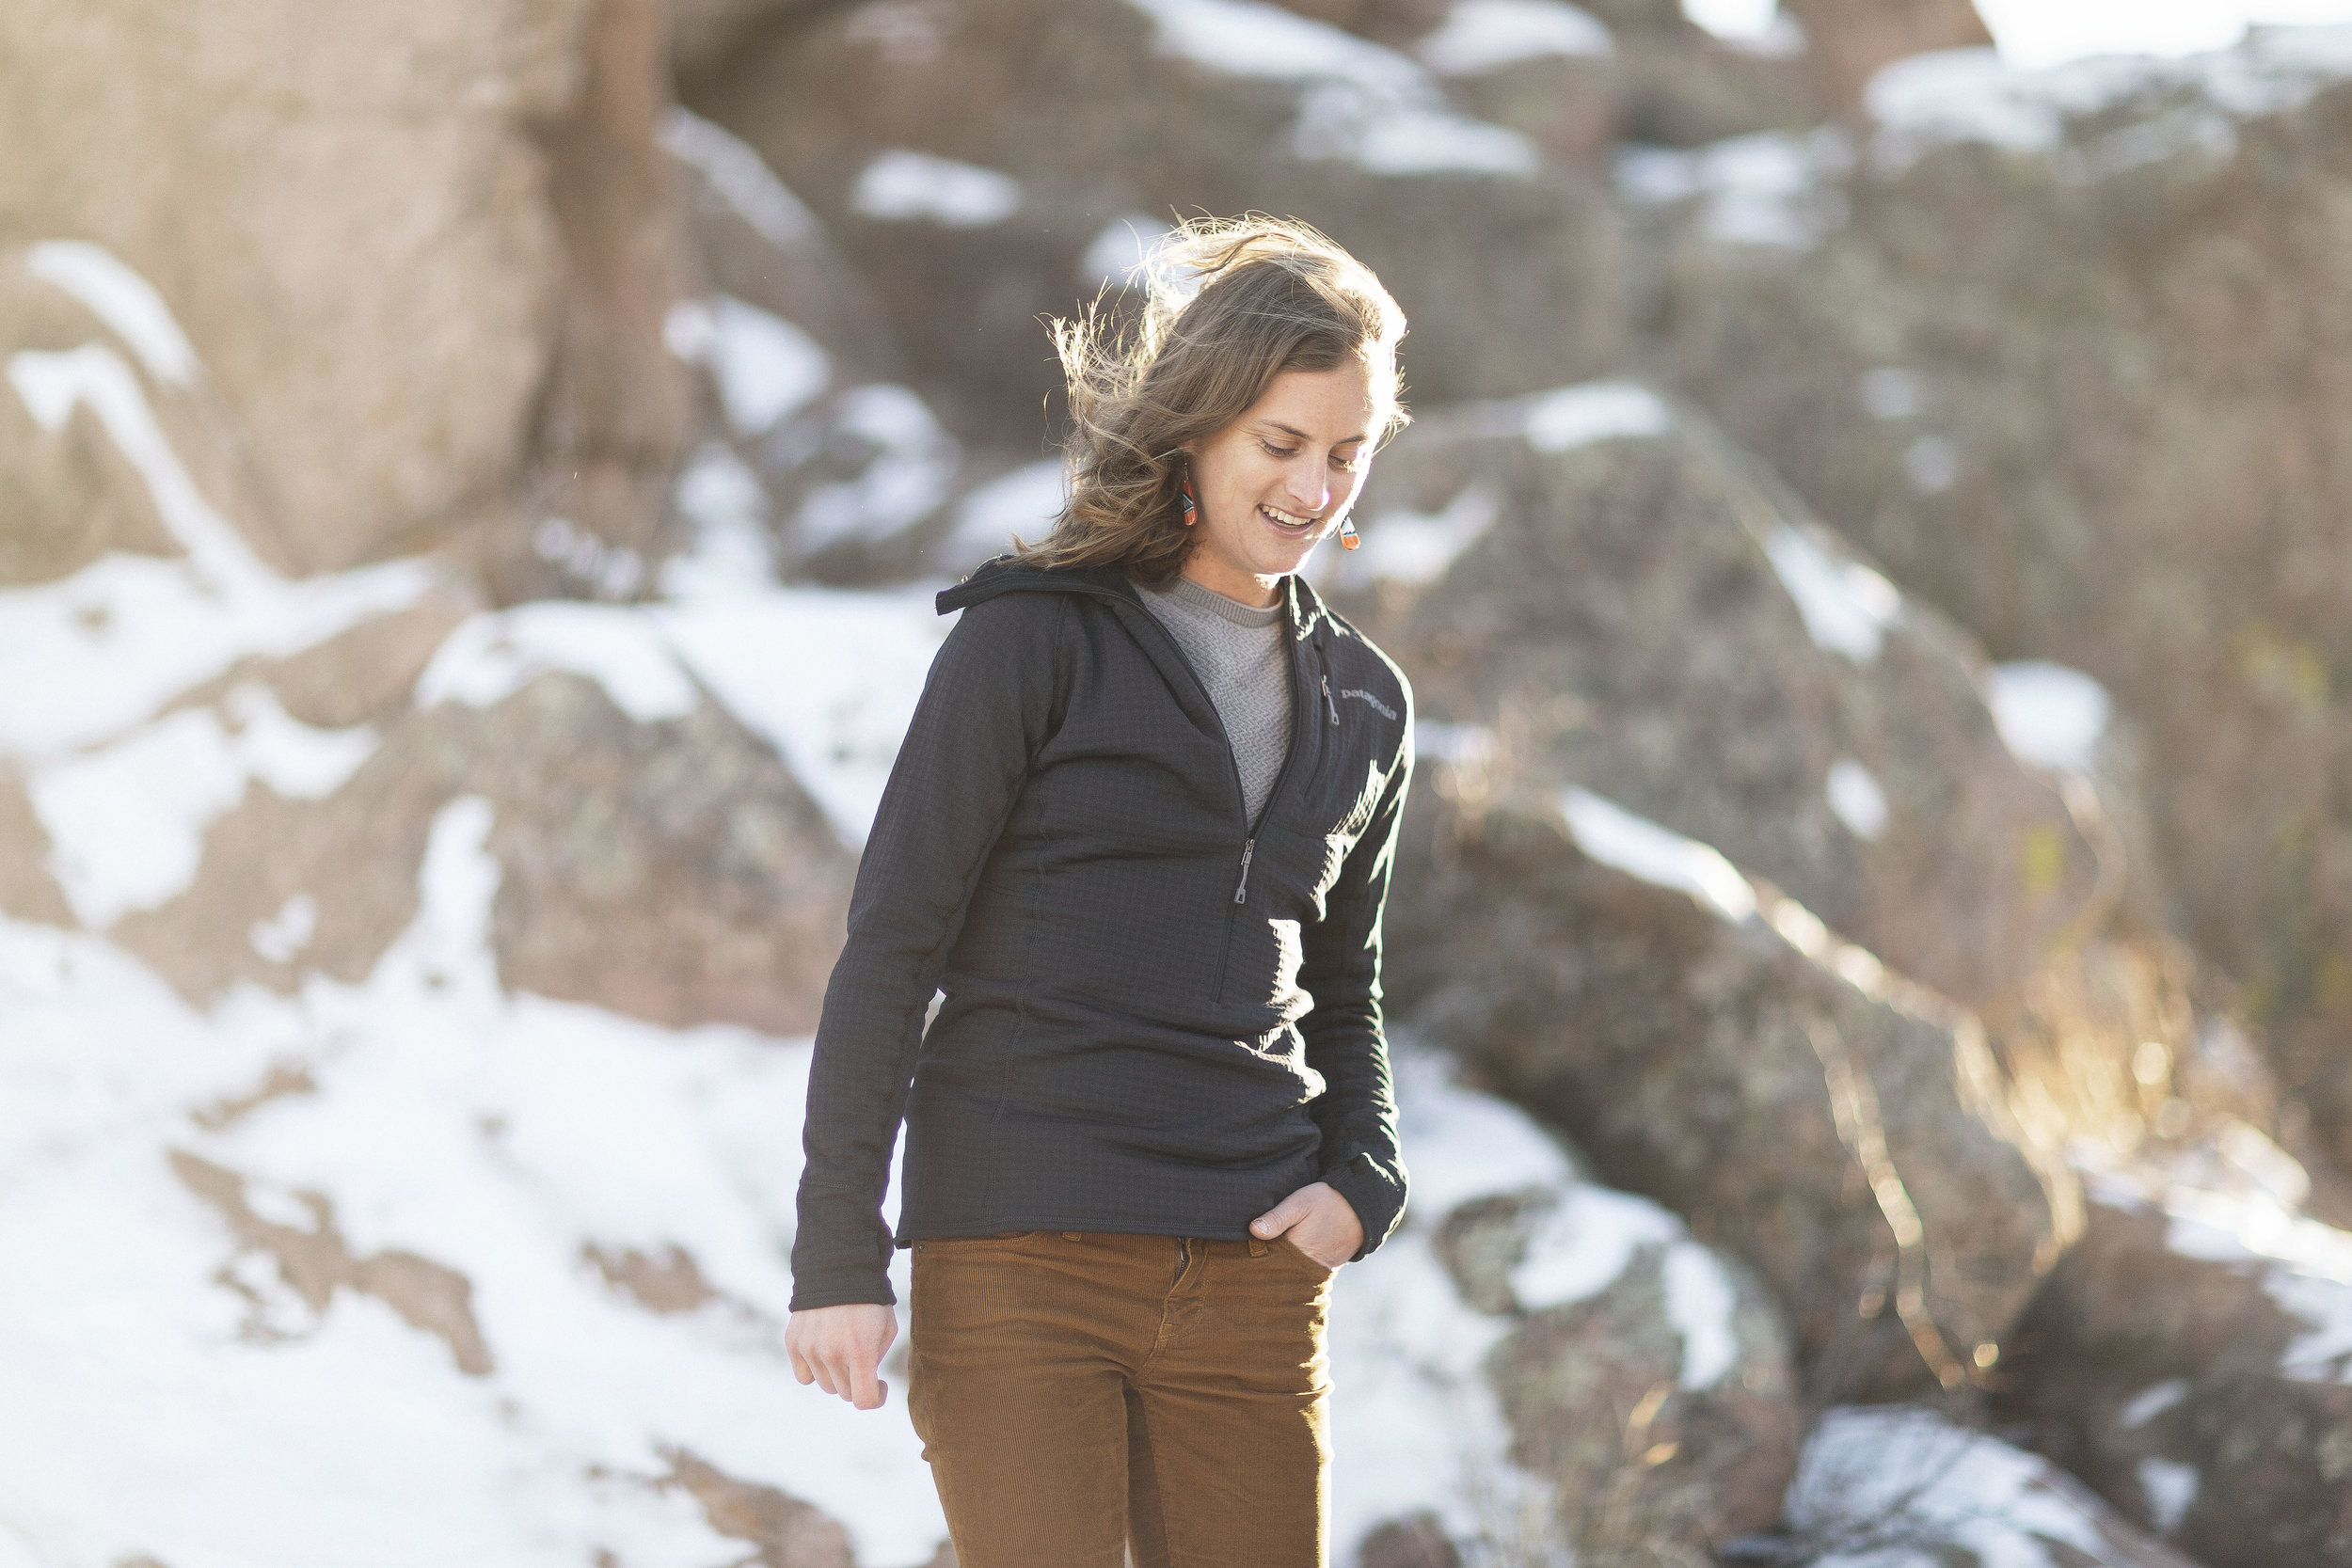 Ultra Runner Clare Gallagher photographed for 5280 Magazine in Boulder, Colorado.